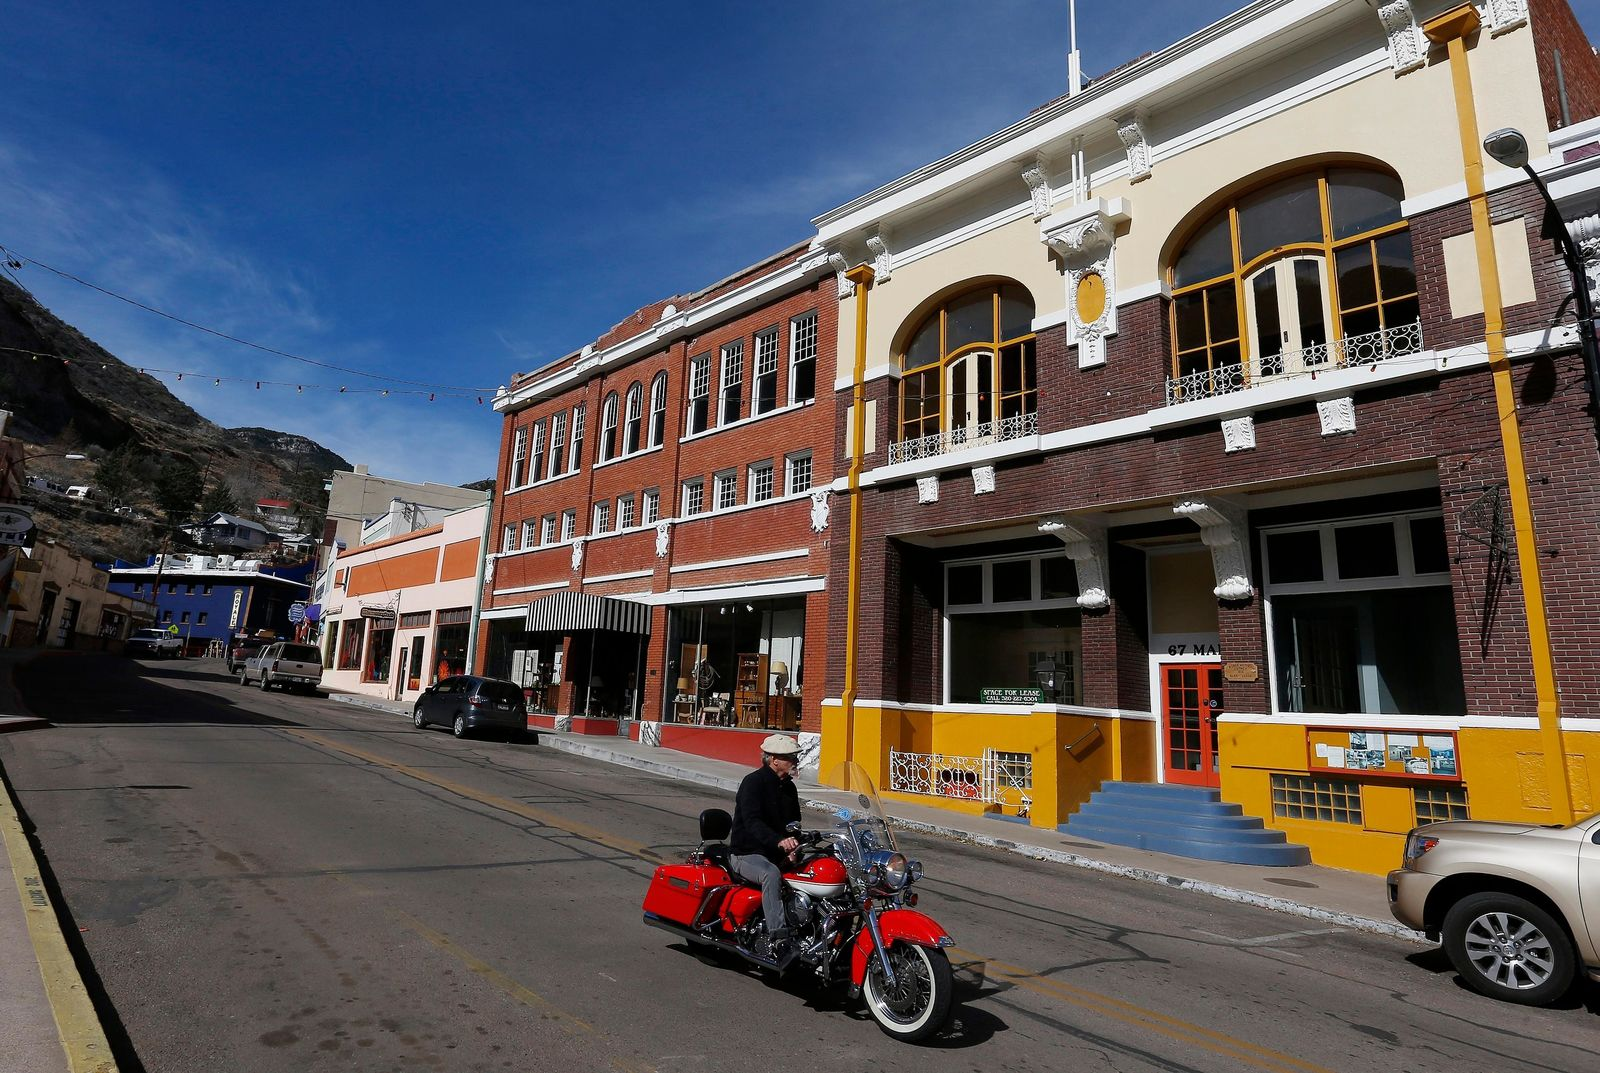 FILE - This Feb. 17, 2013 file photo shows shops and restaurants on the main street in this once bustling mining town of Bisbee, Ariz.{ } (AP Photo/Ross D. Franklin)